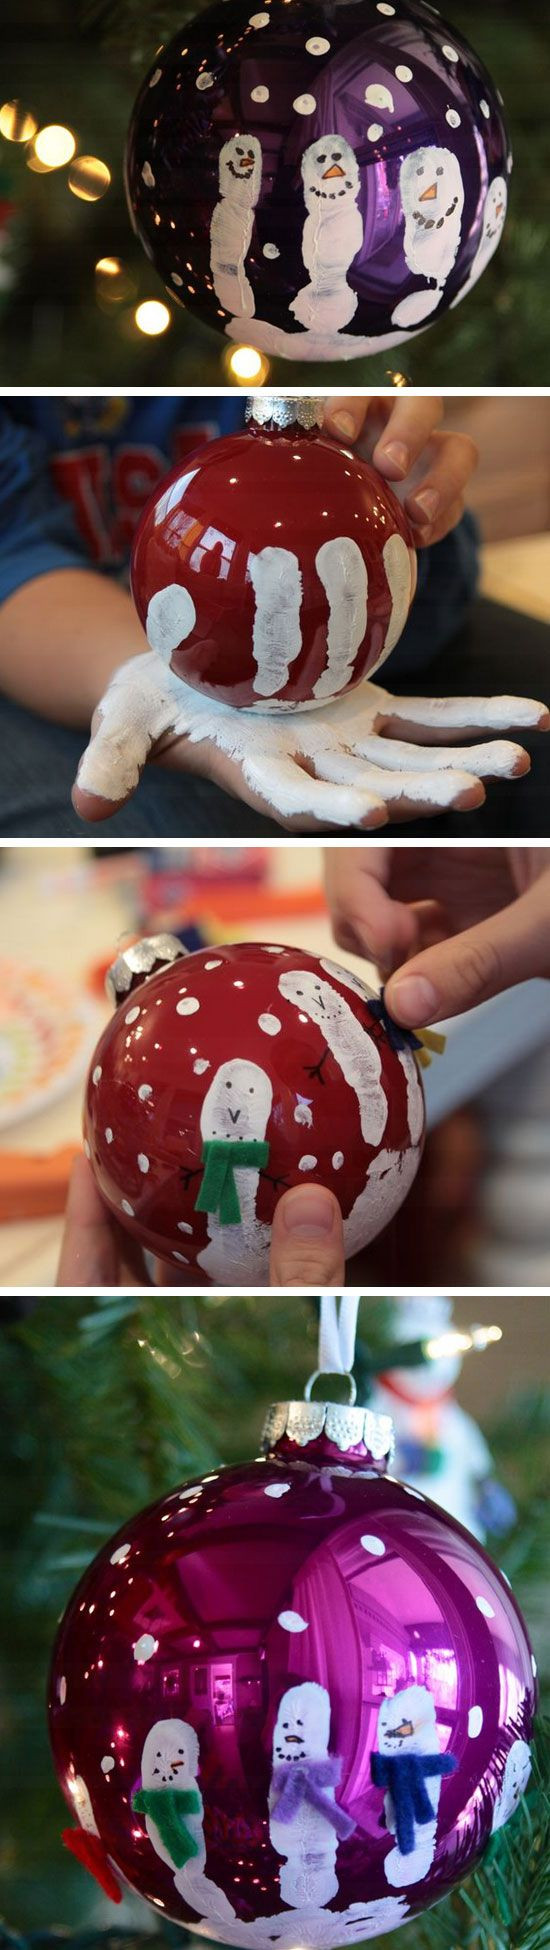 DIY Craft Ideas For Kids  Easy and Cute DIY Christmas Crafts for Kids to Make Hative